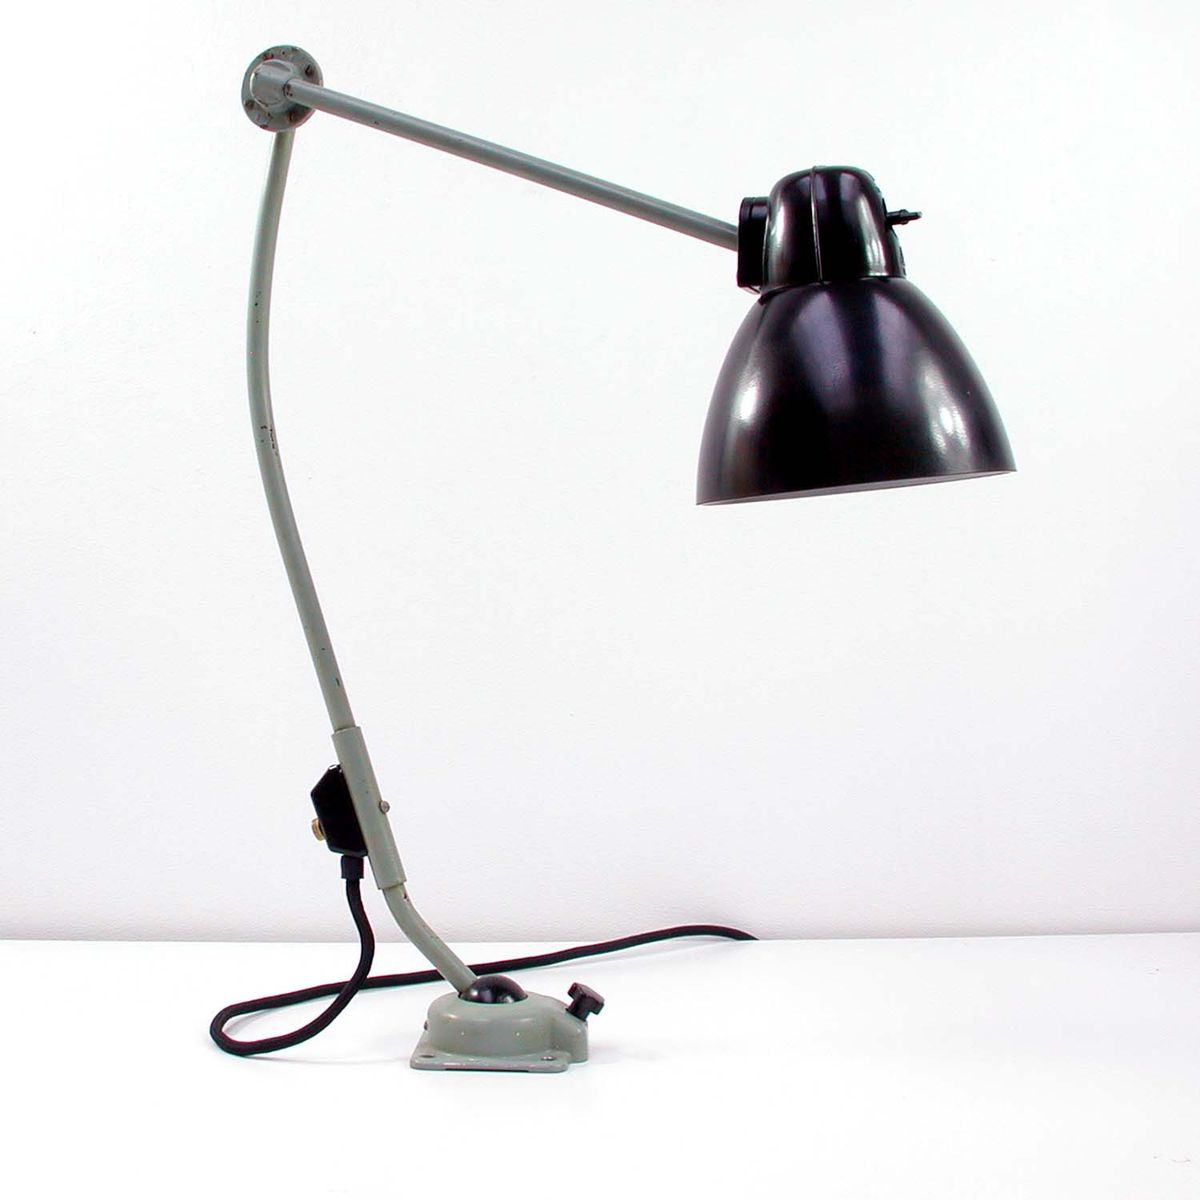 Workbench Lights Vintage: Vintage Industrial Work Lamp From Kandem Leuchte, 1950s